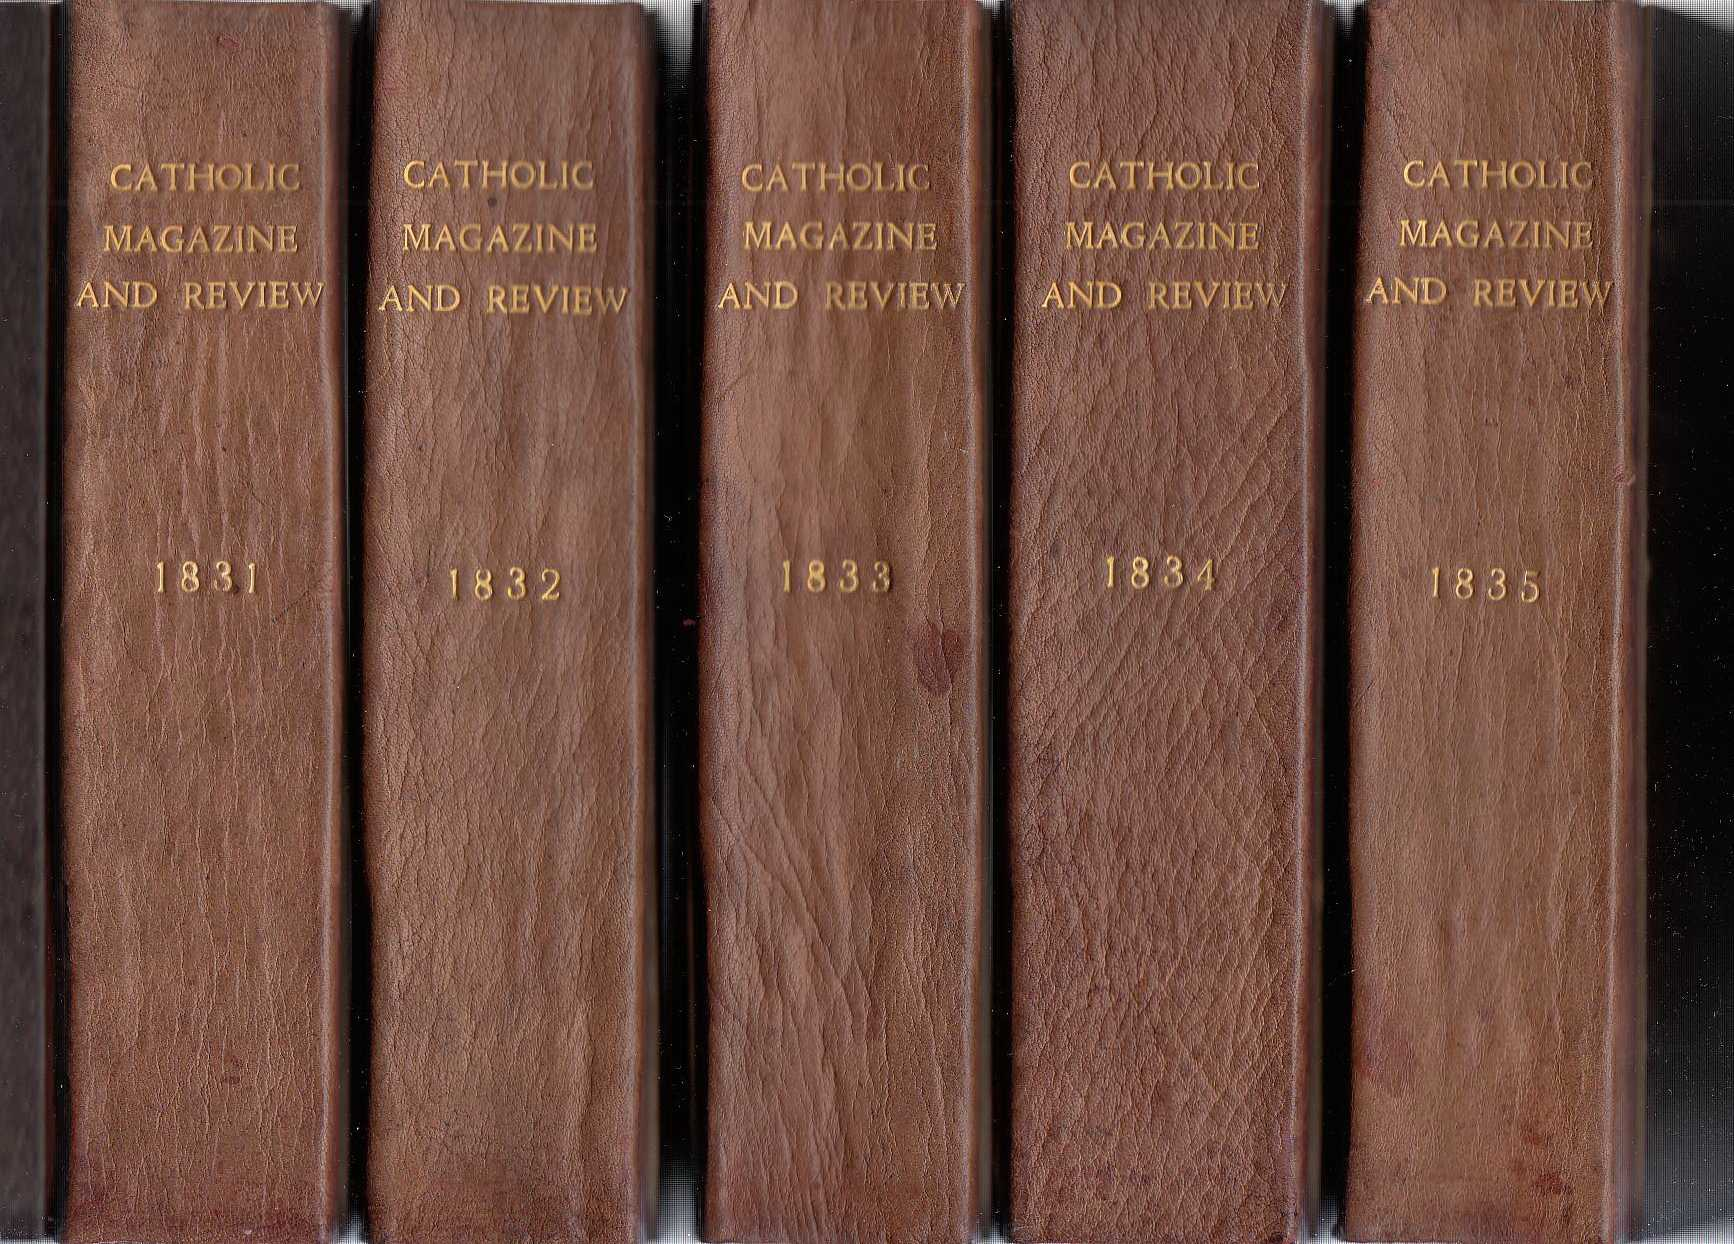 The Catholic Magazine and Review.  Volume 1, 1832 to Volume 6, 1835. [All published, 1st series]., ---.